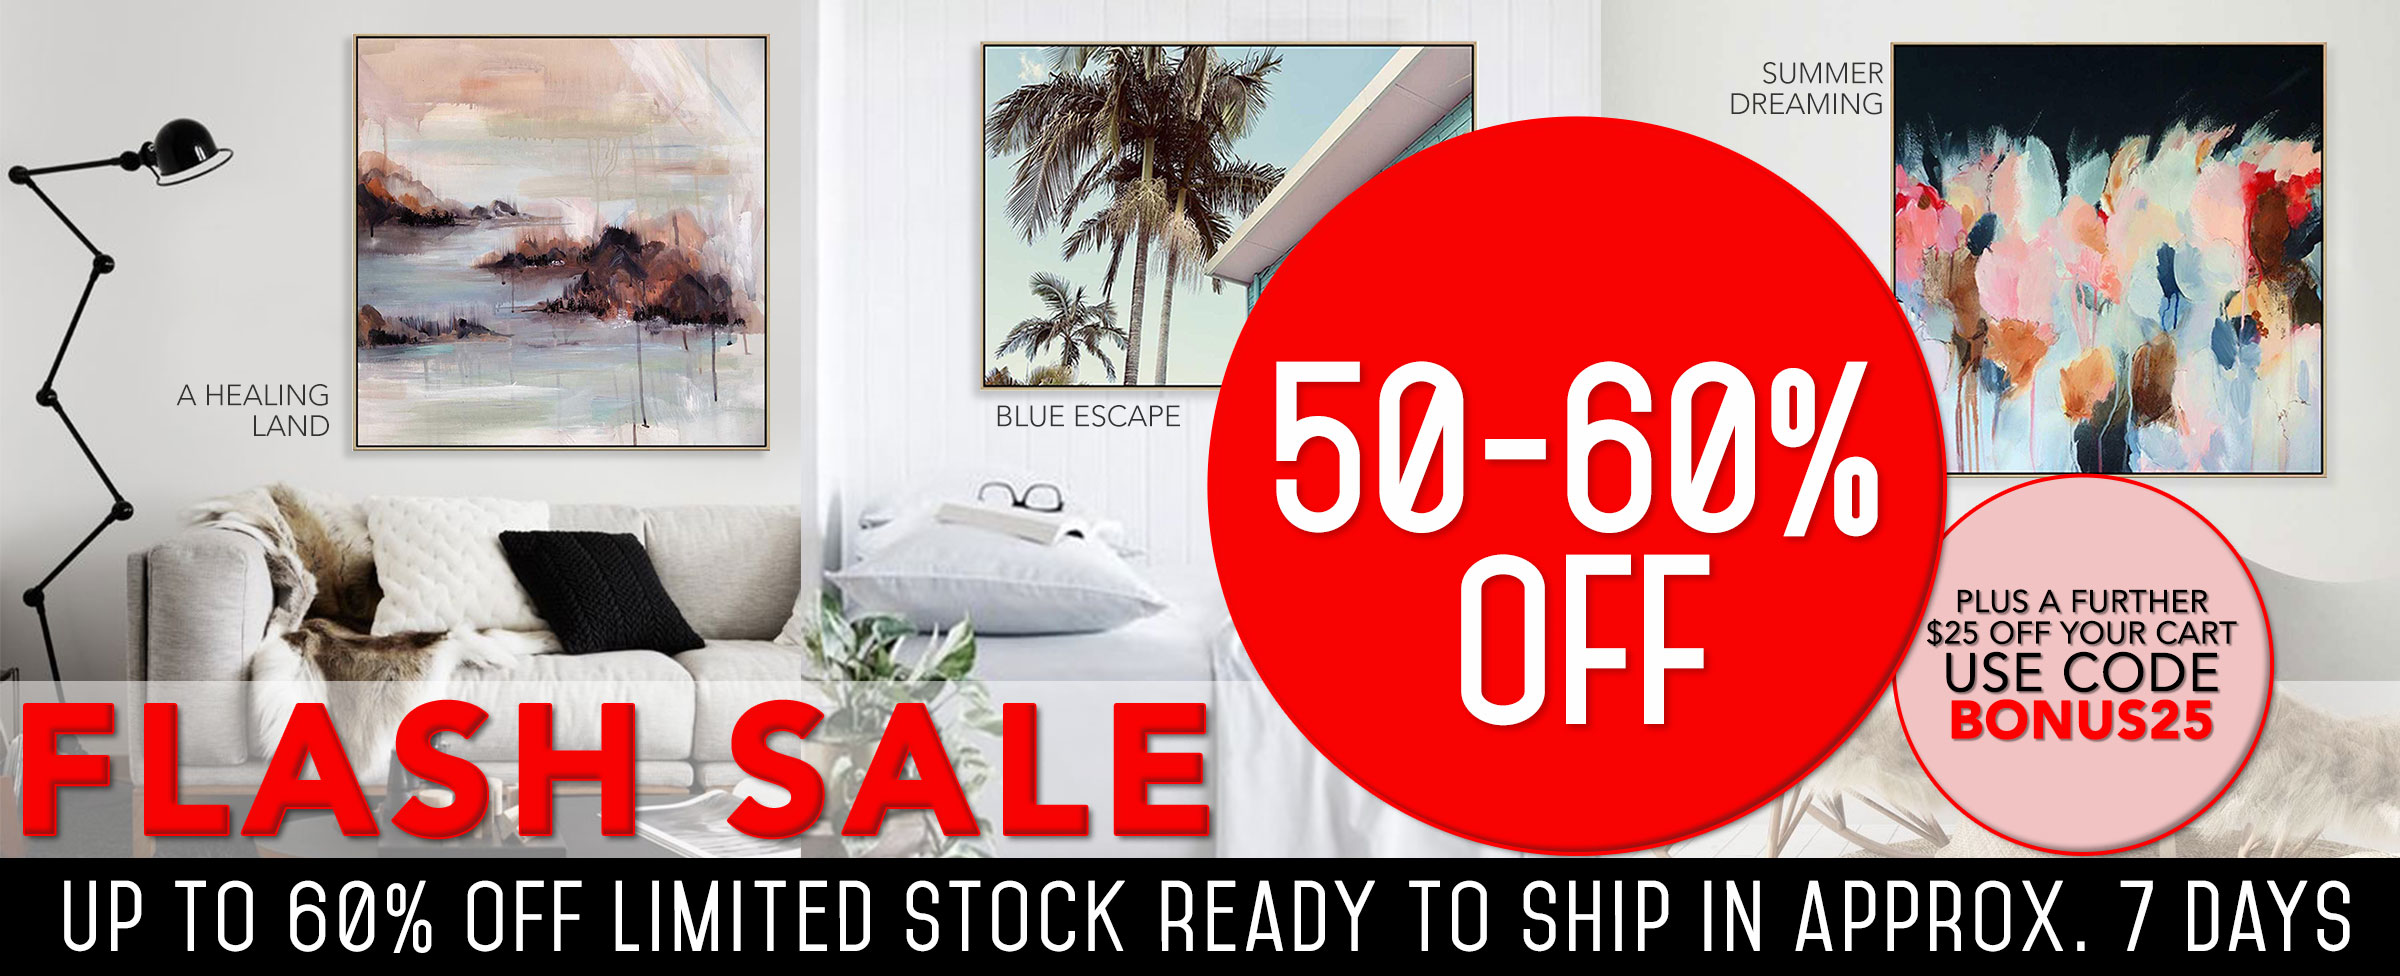 MAIN ART ON PROMOTION - CLEARANCE